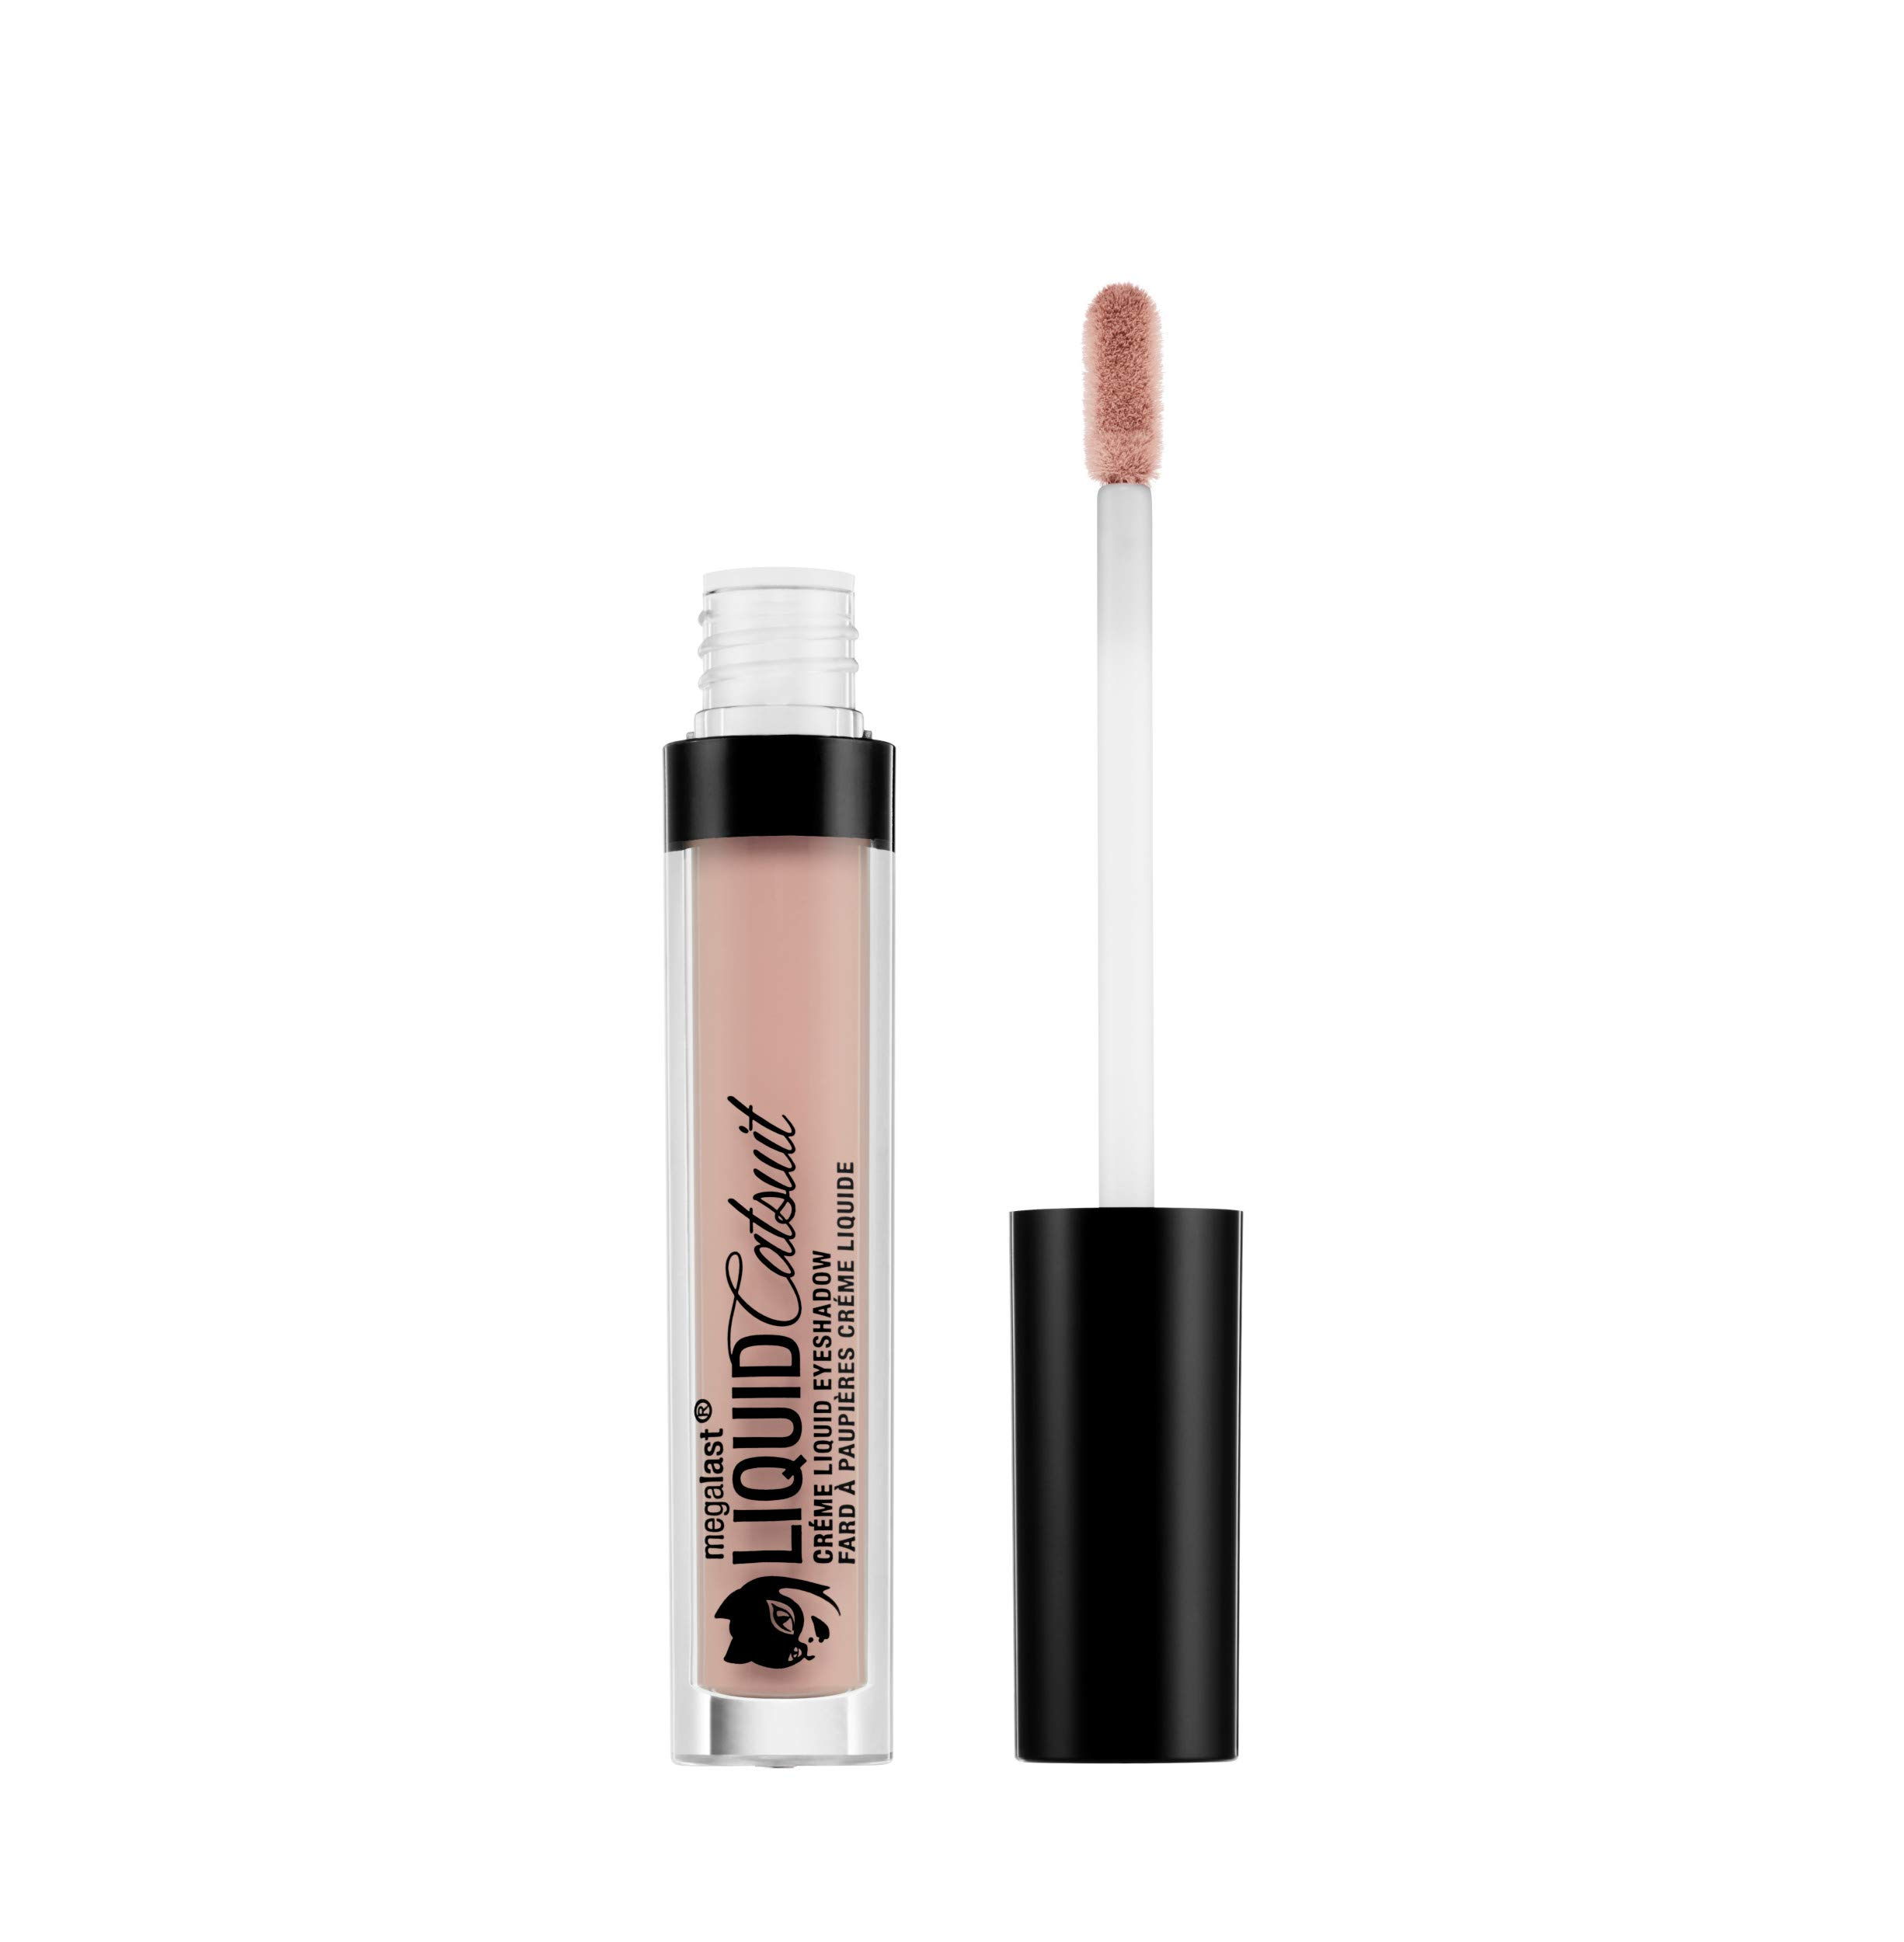 wet n wild Megalast Liquid Catsuit Creme Eyeshadow, Off The Grind, 0.12 Ounce